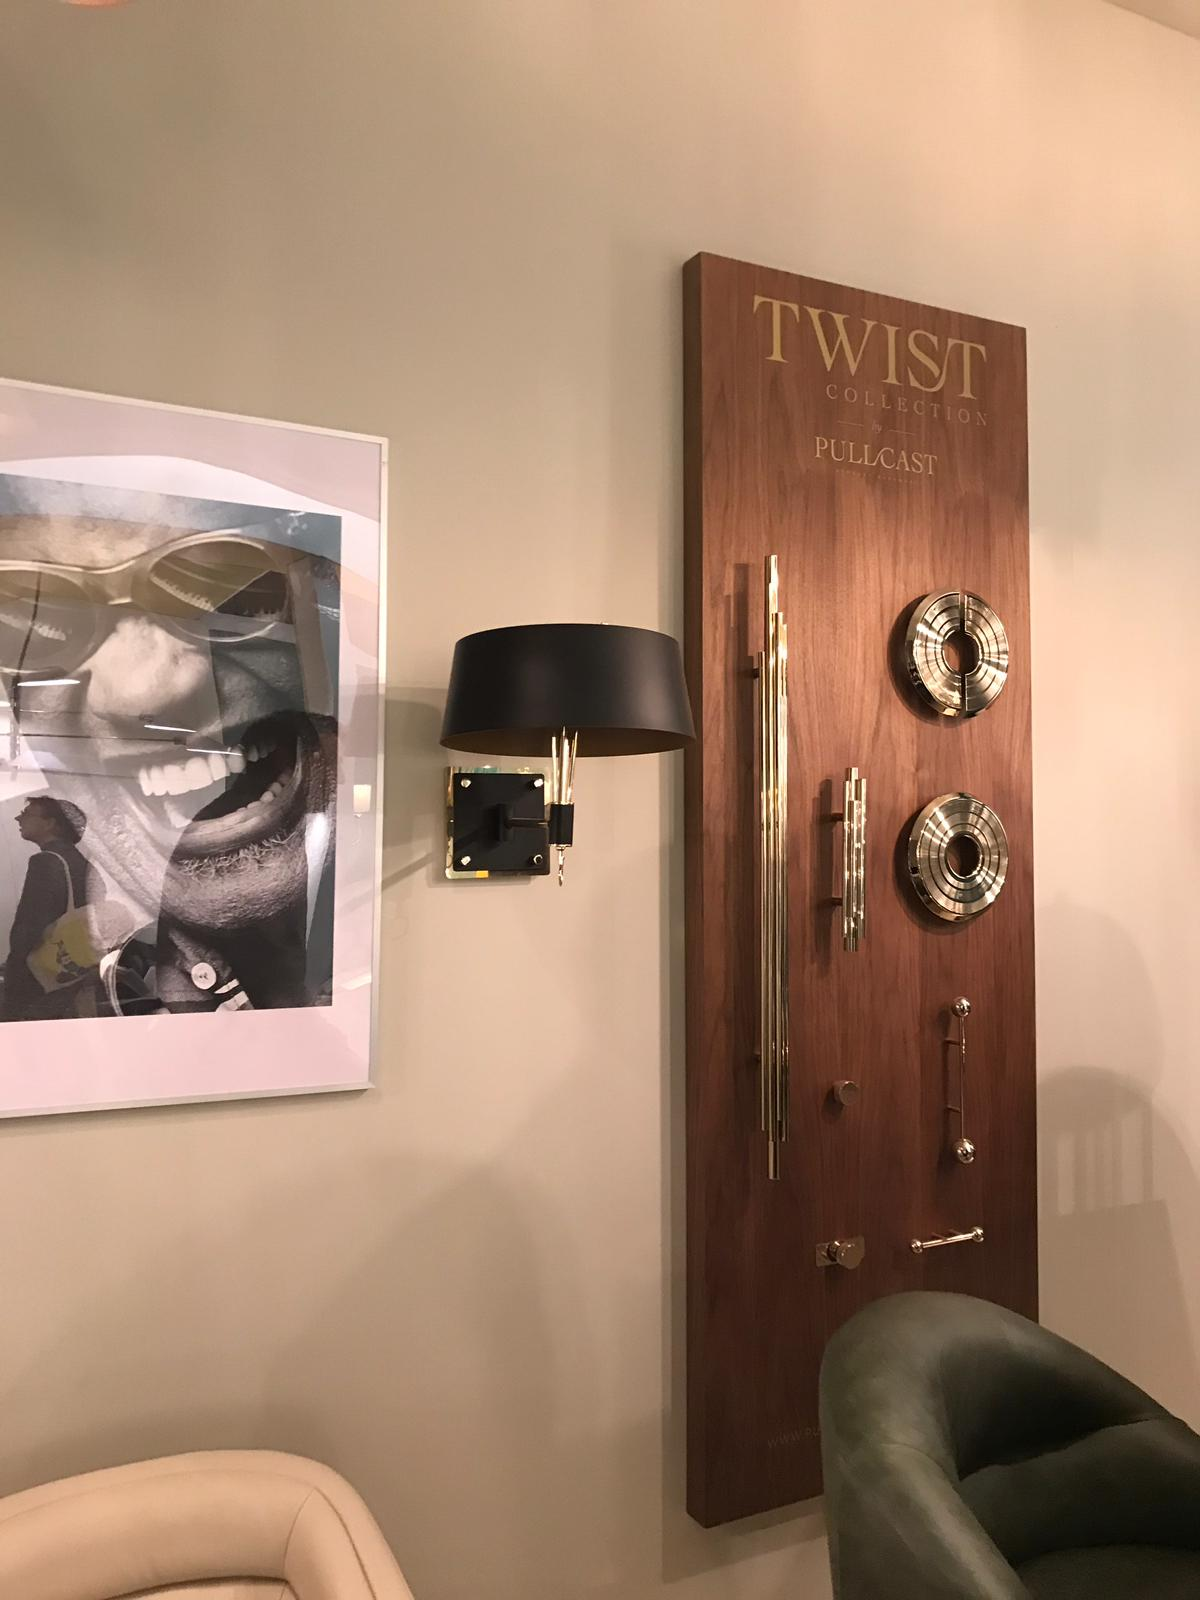 PullCast is Shinning Brightly at Equip Hotel Paris 2018 decorative hardware Decorative Hardware Agenda – What's in PullCast Bag for Milan? WhatsApp Image 2018 11 12 at 12